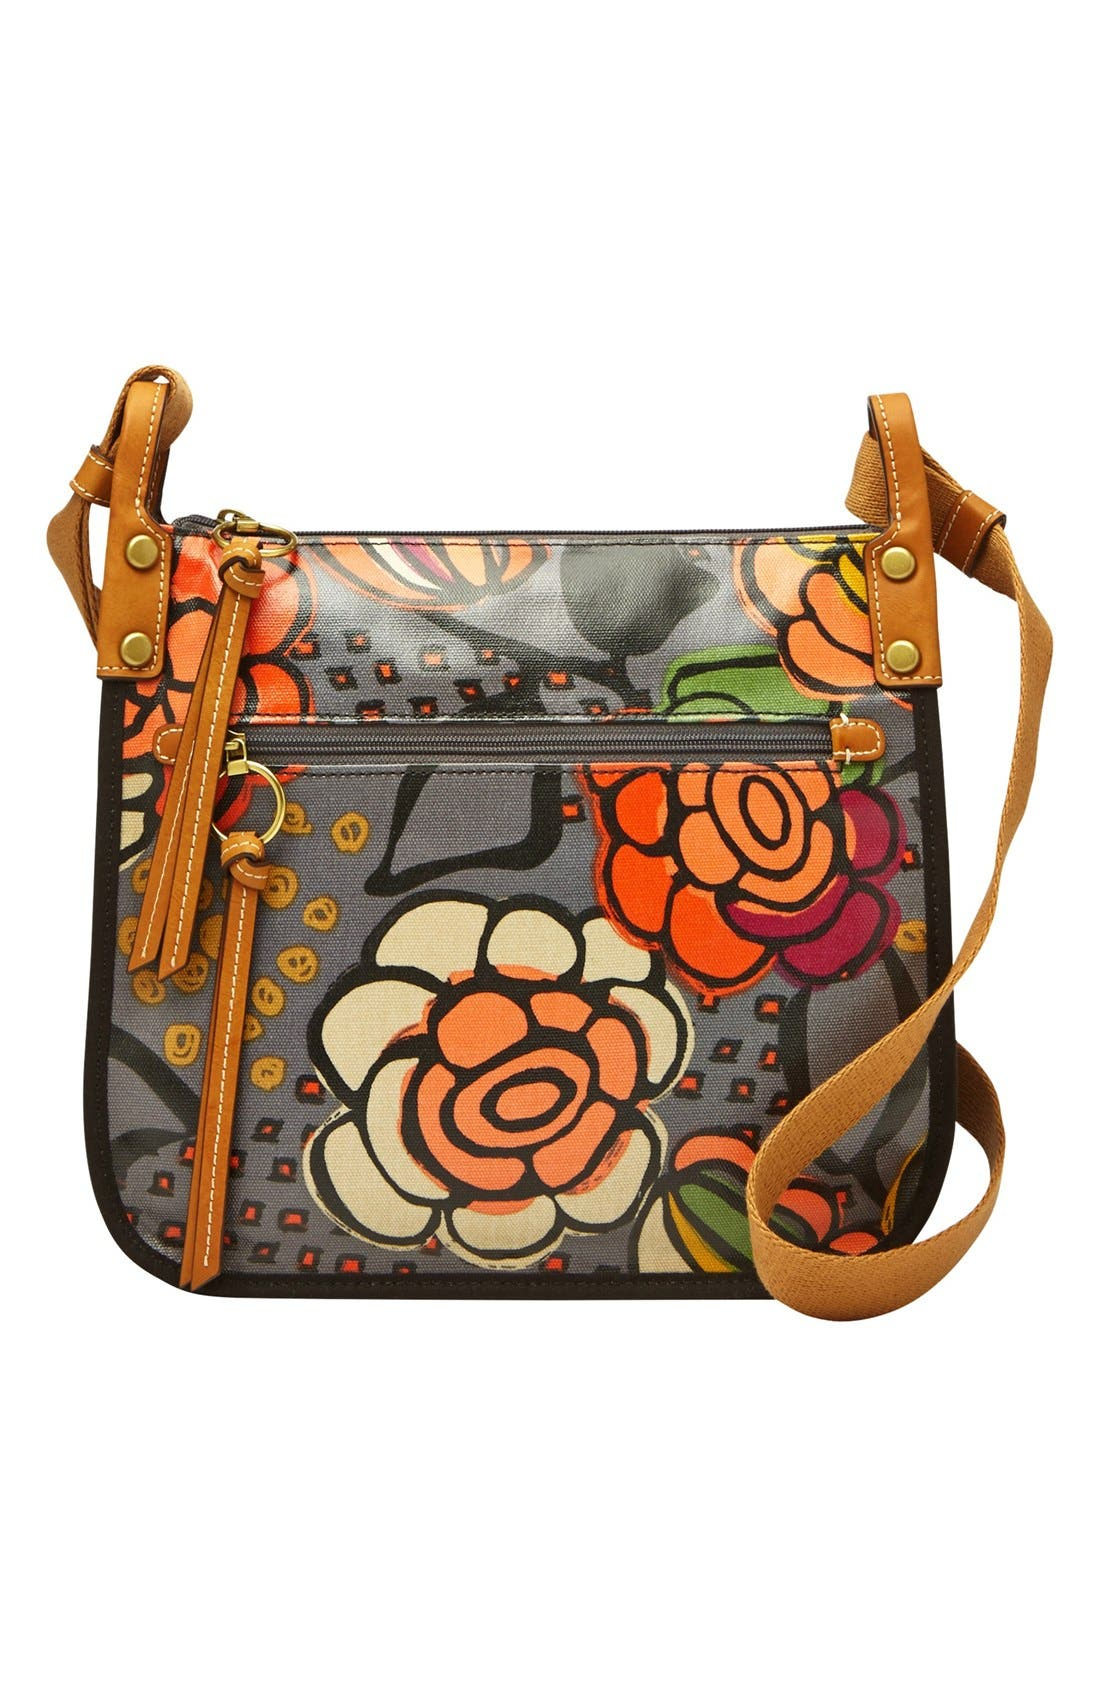 Main Image - Fossil 'Key-Per' Print Coated Canvas Crossbody Bag